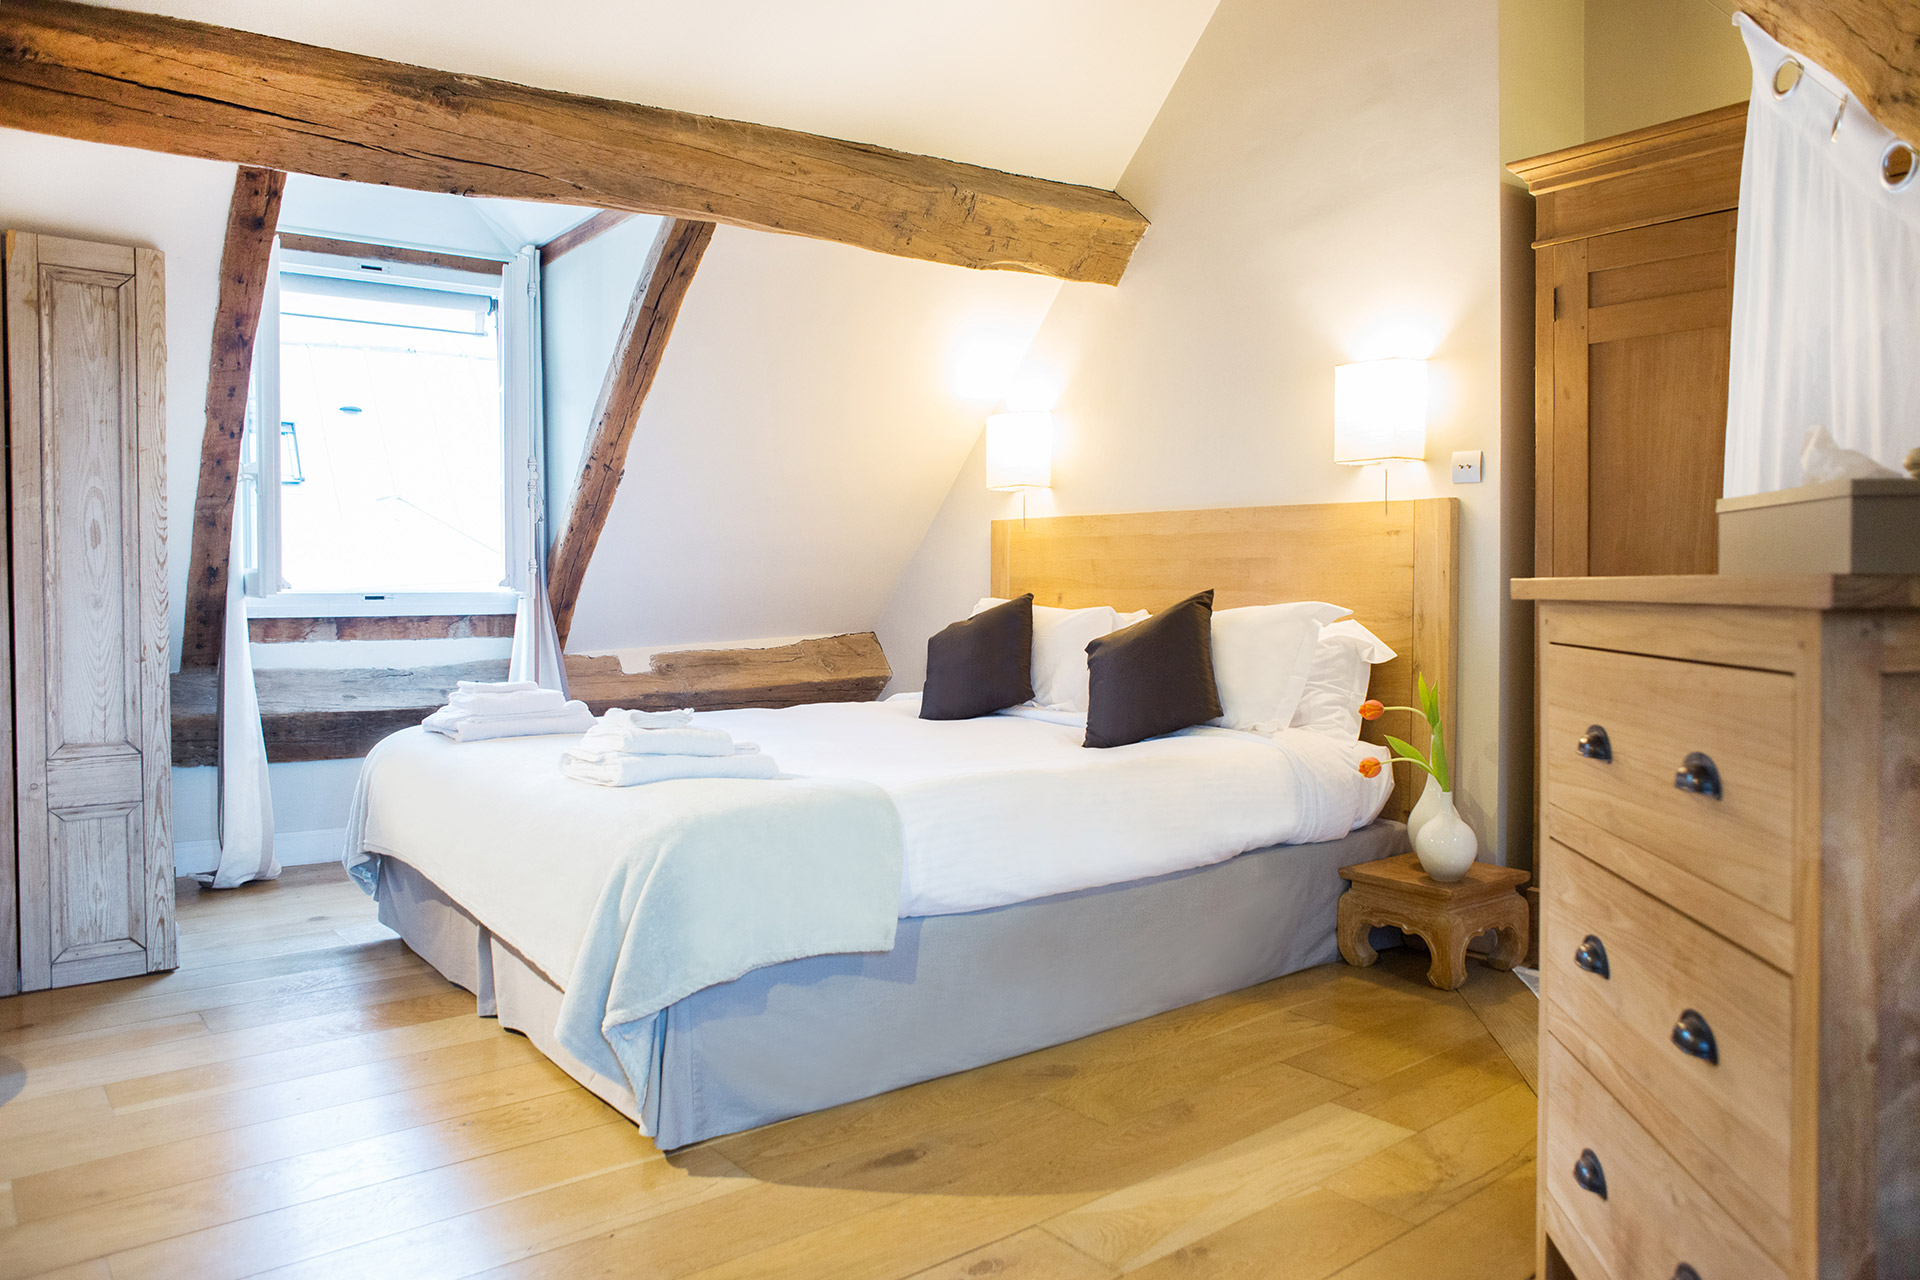 One of the bedrooms of the Brittany vacation rental offered by Paris Perfect